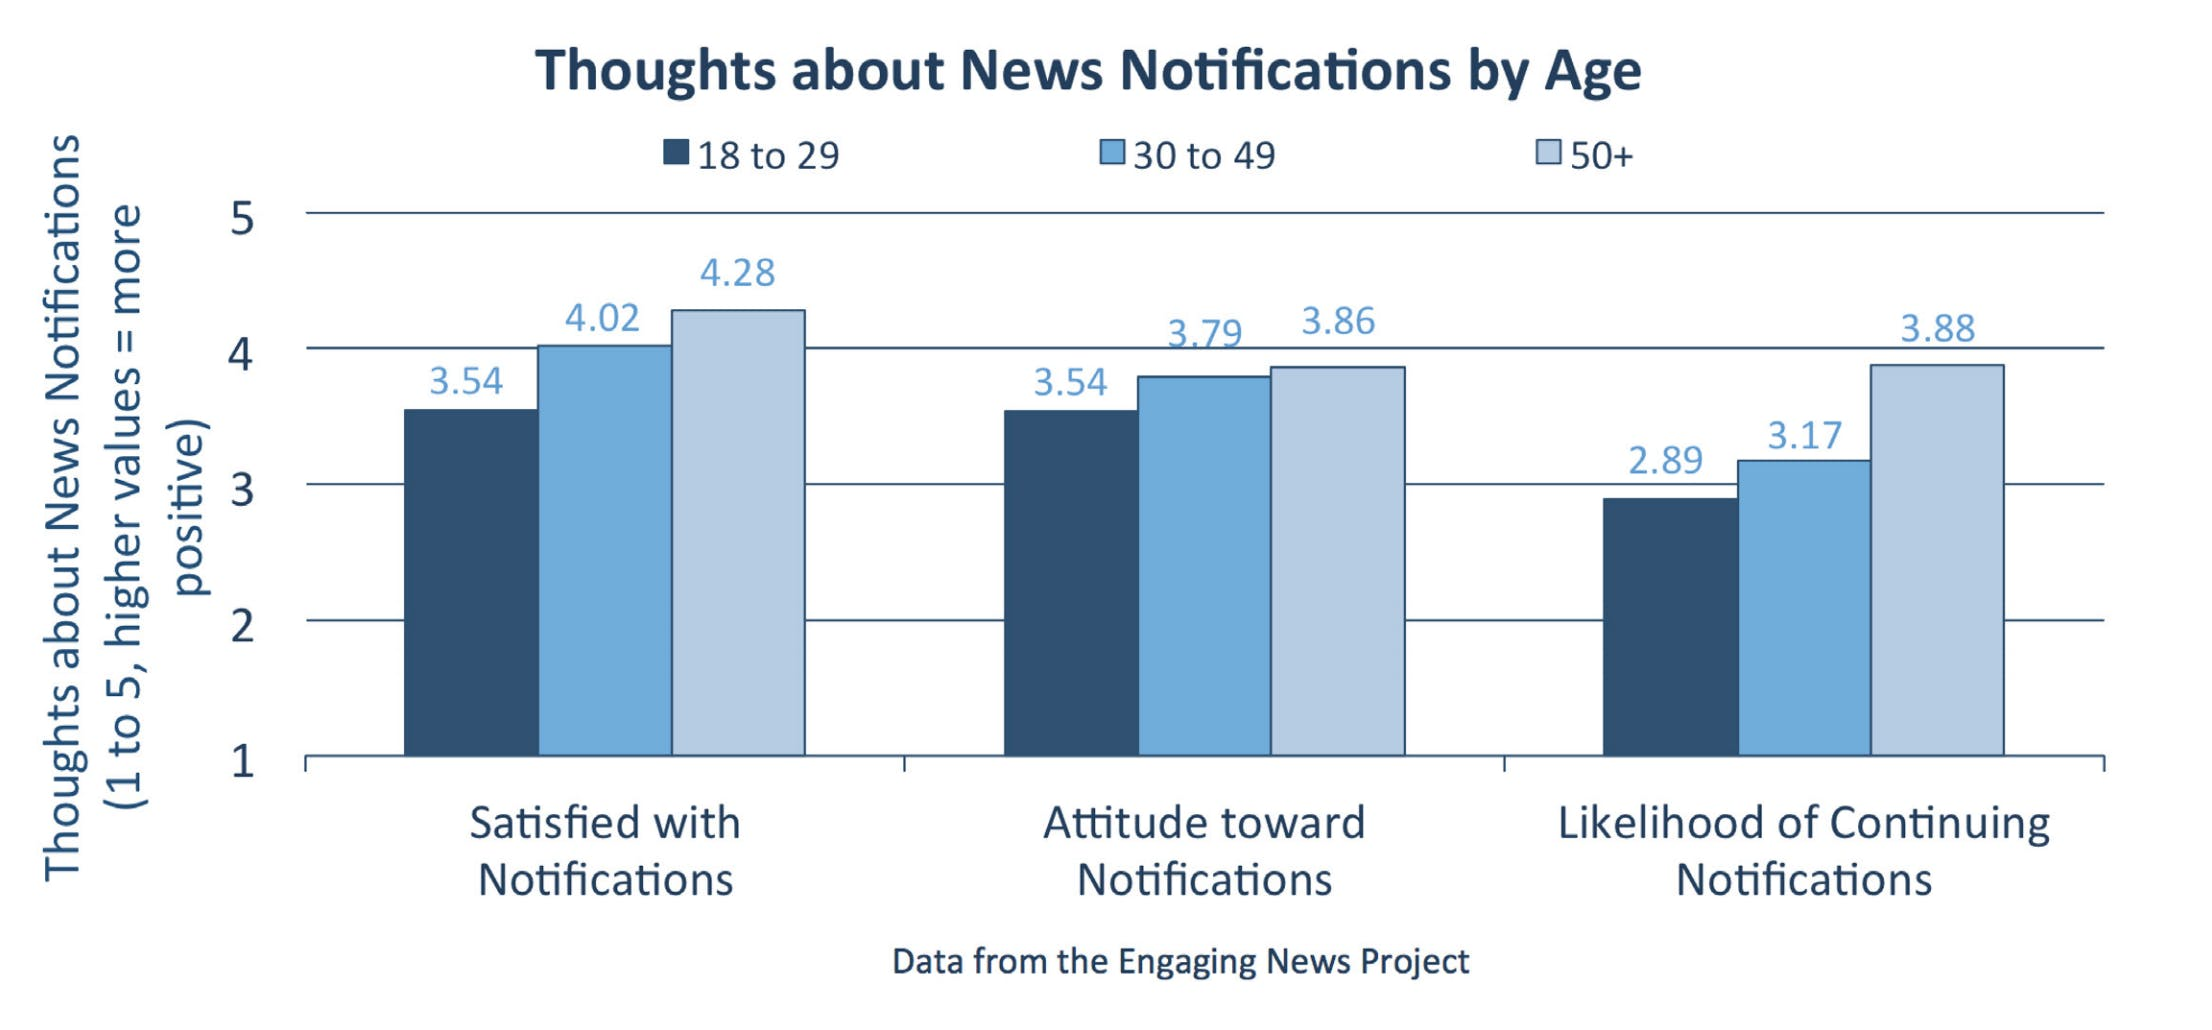 """<p><em>Findings on mobile news notifications from the</em><a href=""""http://www.knightfoundation.org/reports/mobile-news-notifications-a-two-wave-experiment-with-smartphone-users""""><em> Engaging News Project&apos;s recent report.</em></a></p>"""